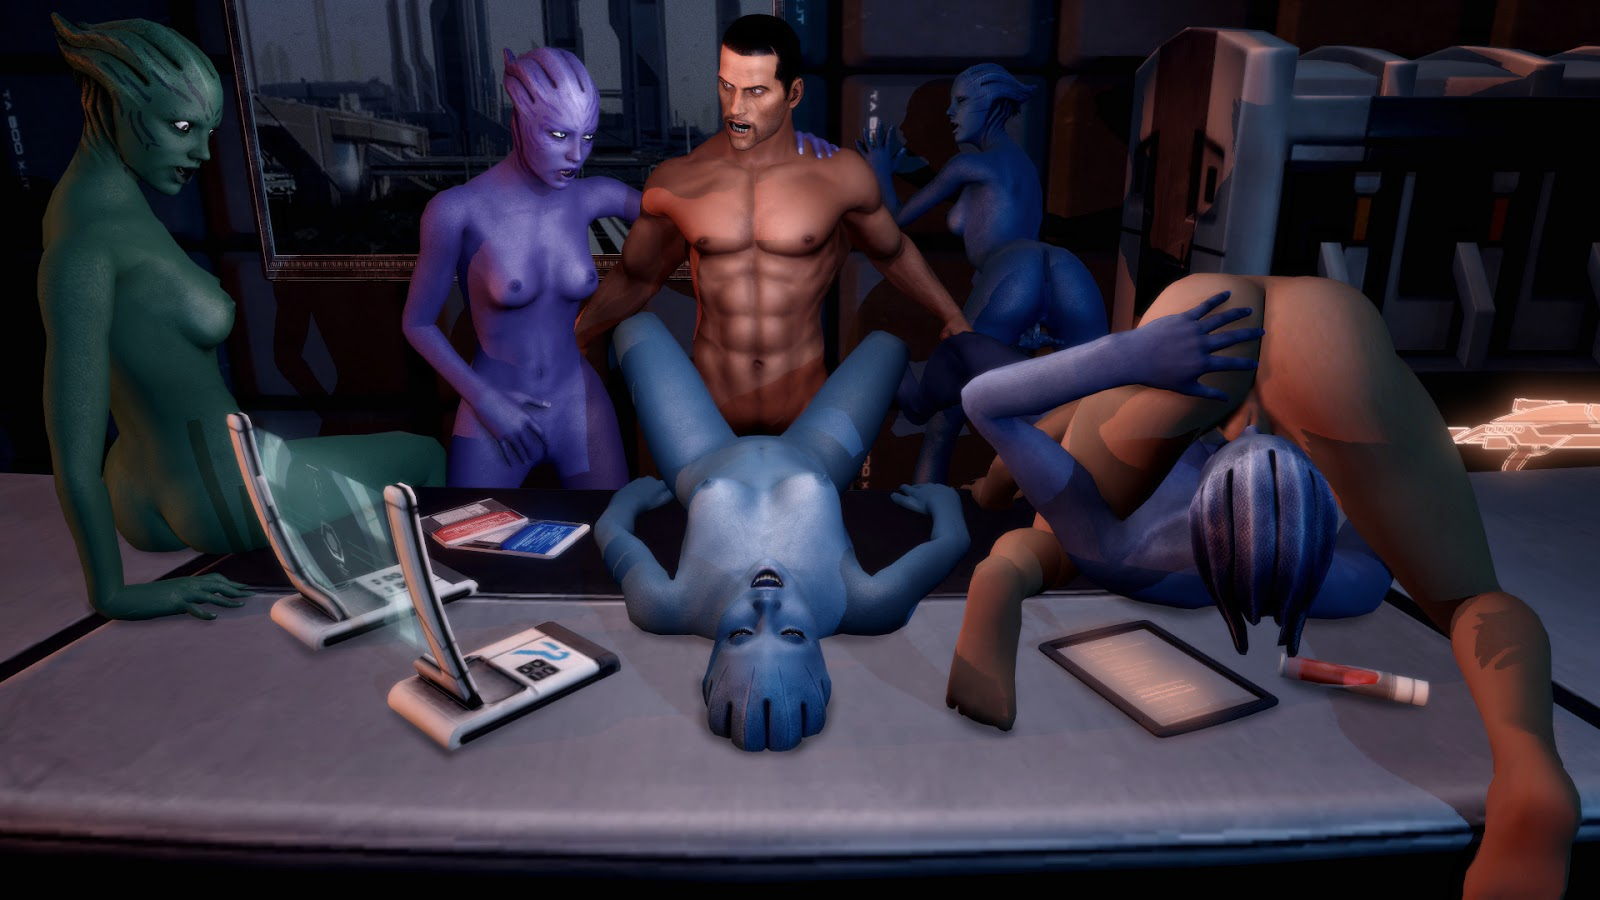 Mass effect 3 porn 3d pics sexual gallery